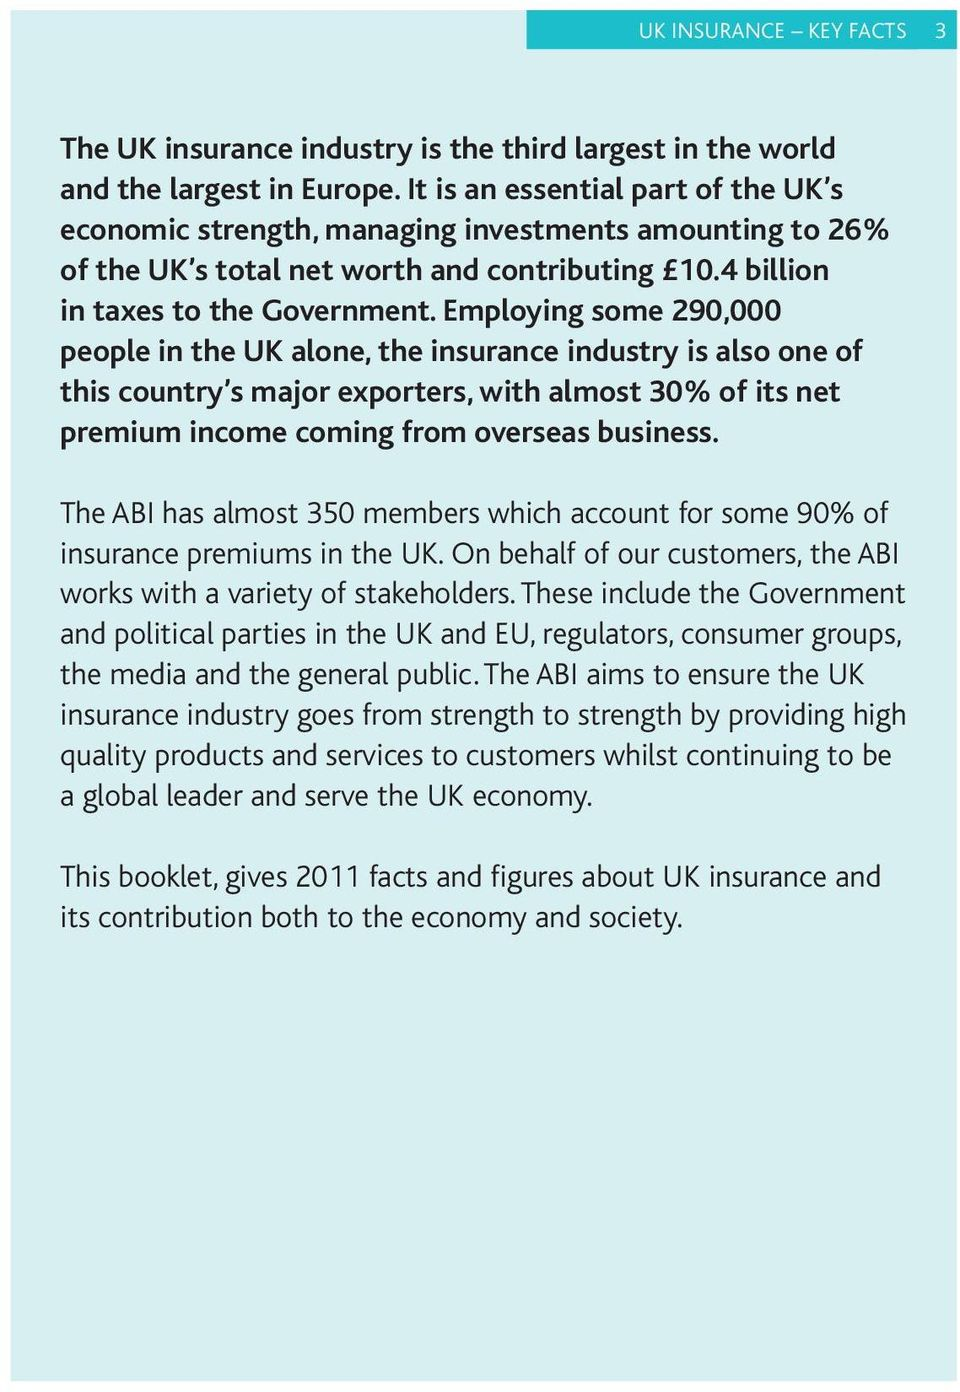 Employing some 290,000 people in the UK alone, the insurance industry is also one of this country s major exporters, with almost 30% of its net premium income coming from overseas business.